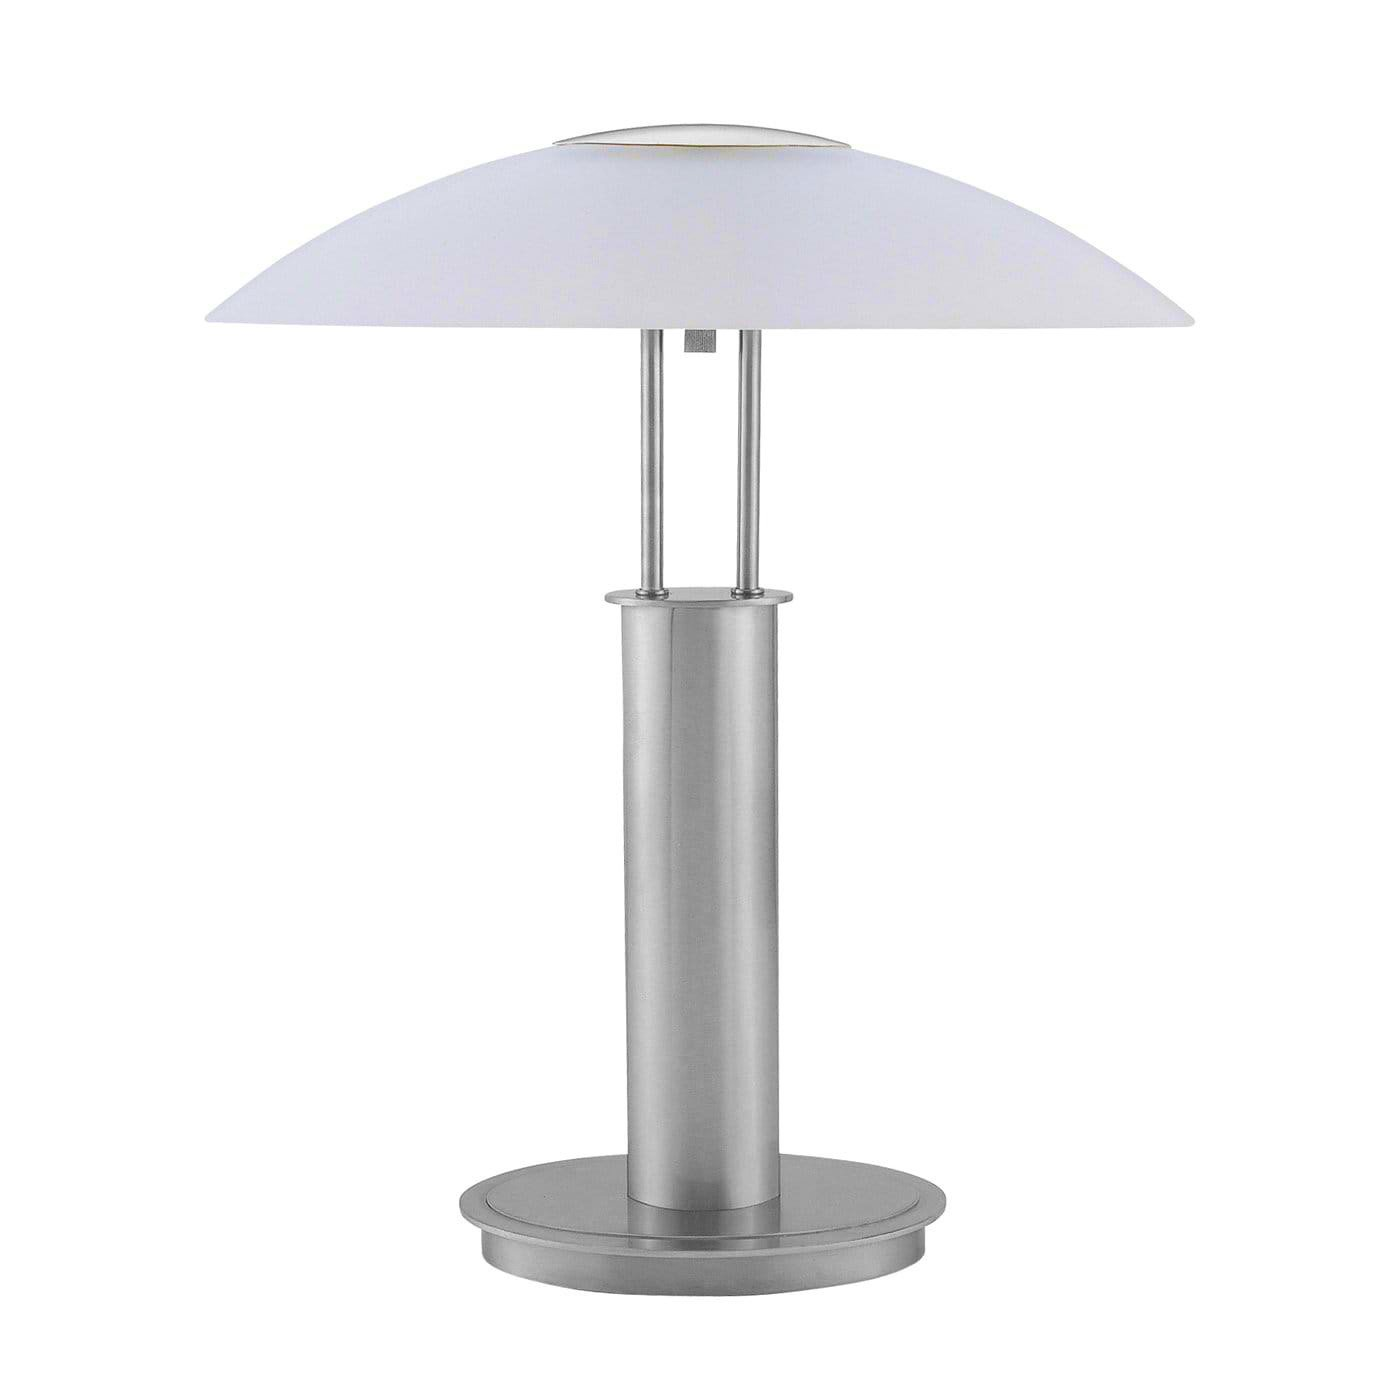 Hongville HV TLAMP 6276 Oval Shape Brushed Steel Base with Frosted Glass Shade Table Touch Lamp